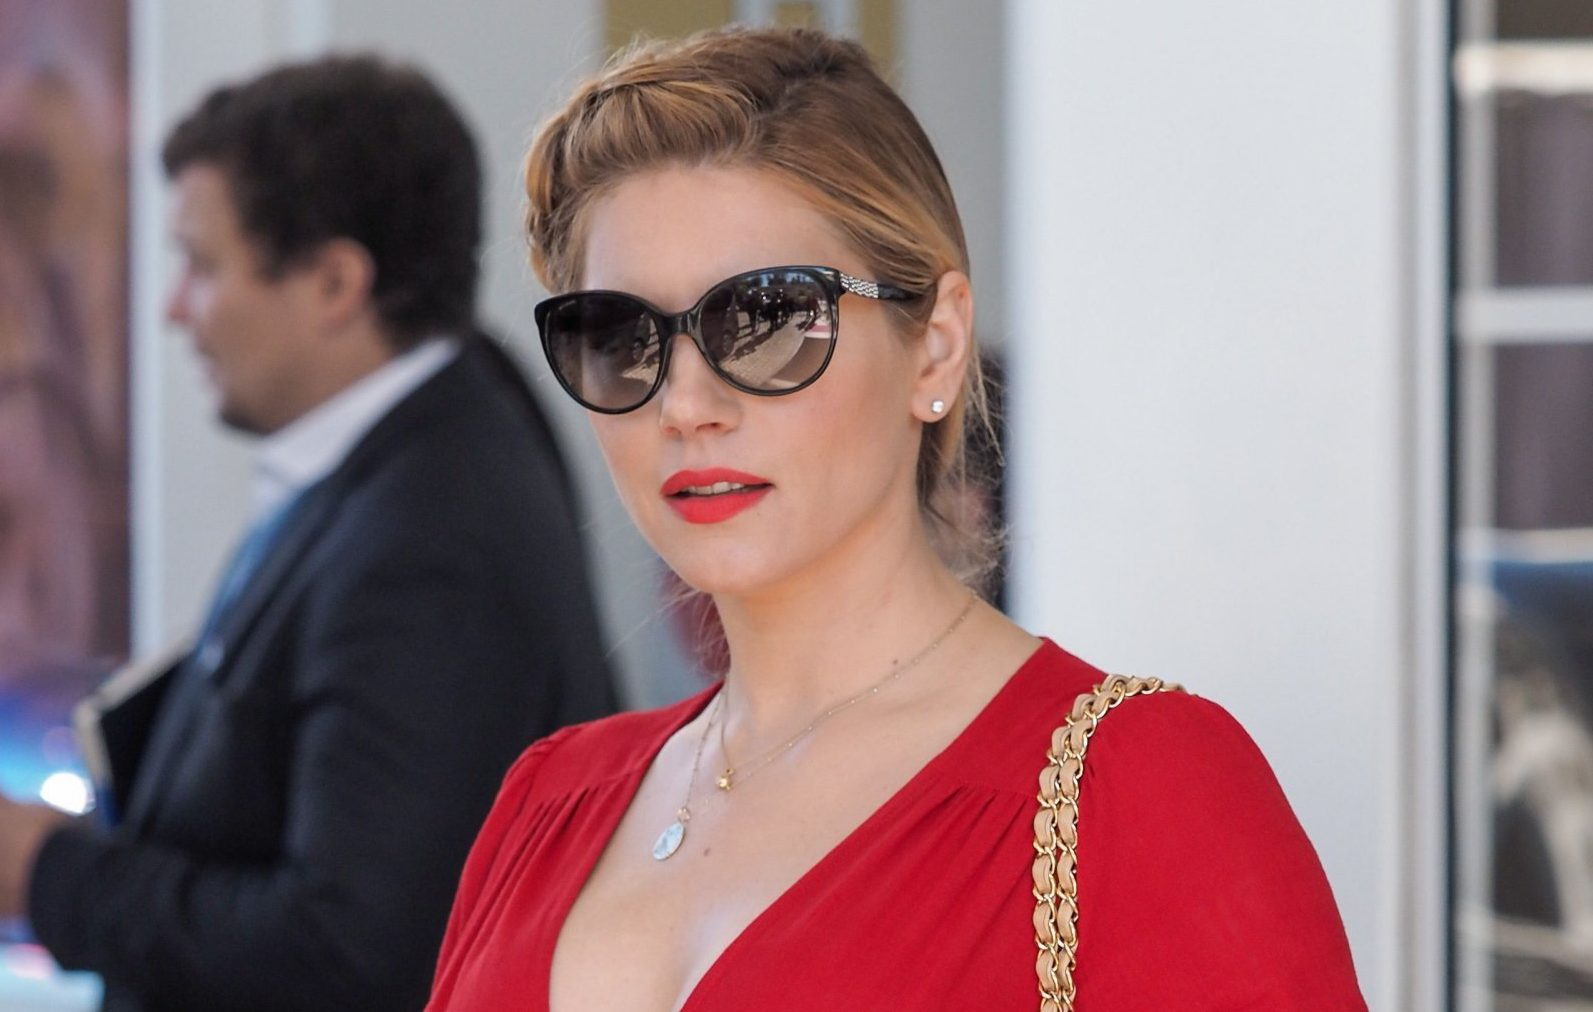 Vikings star Katheryn Winnick fights for gender equality at Cannes Series Festival – and it is so Lagertha